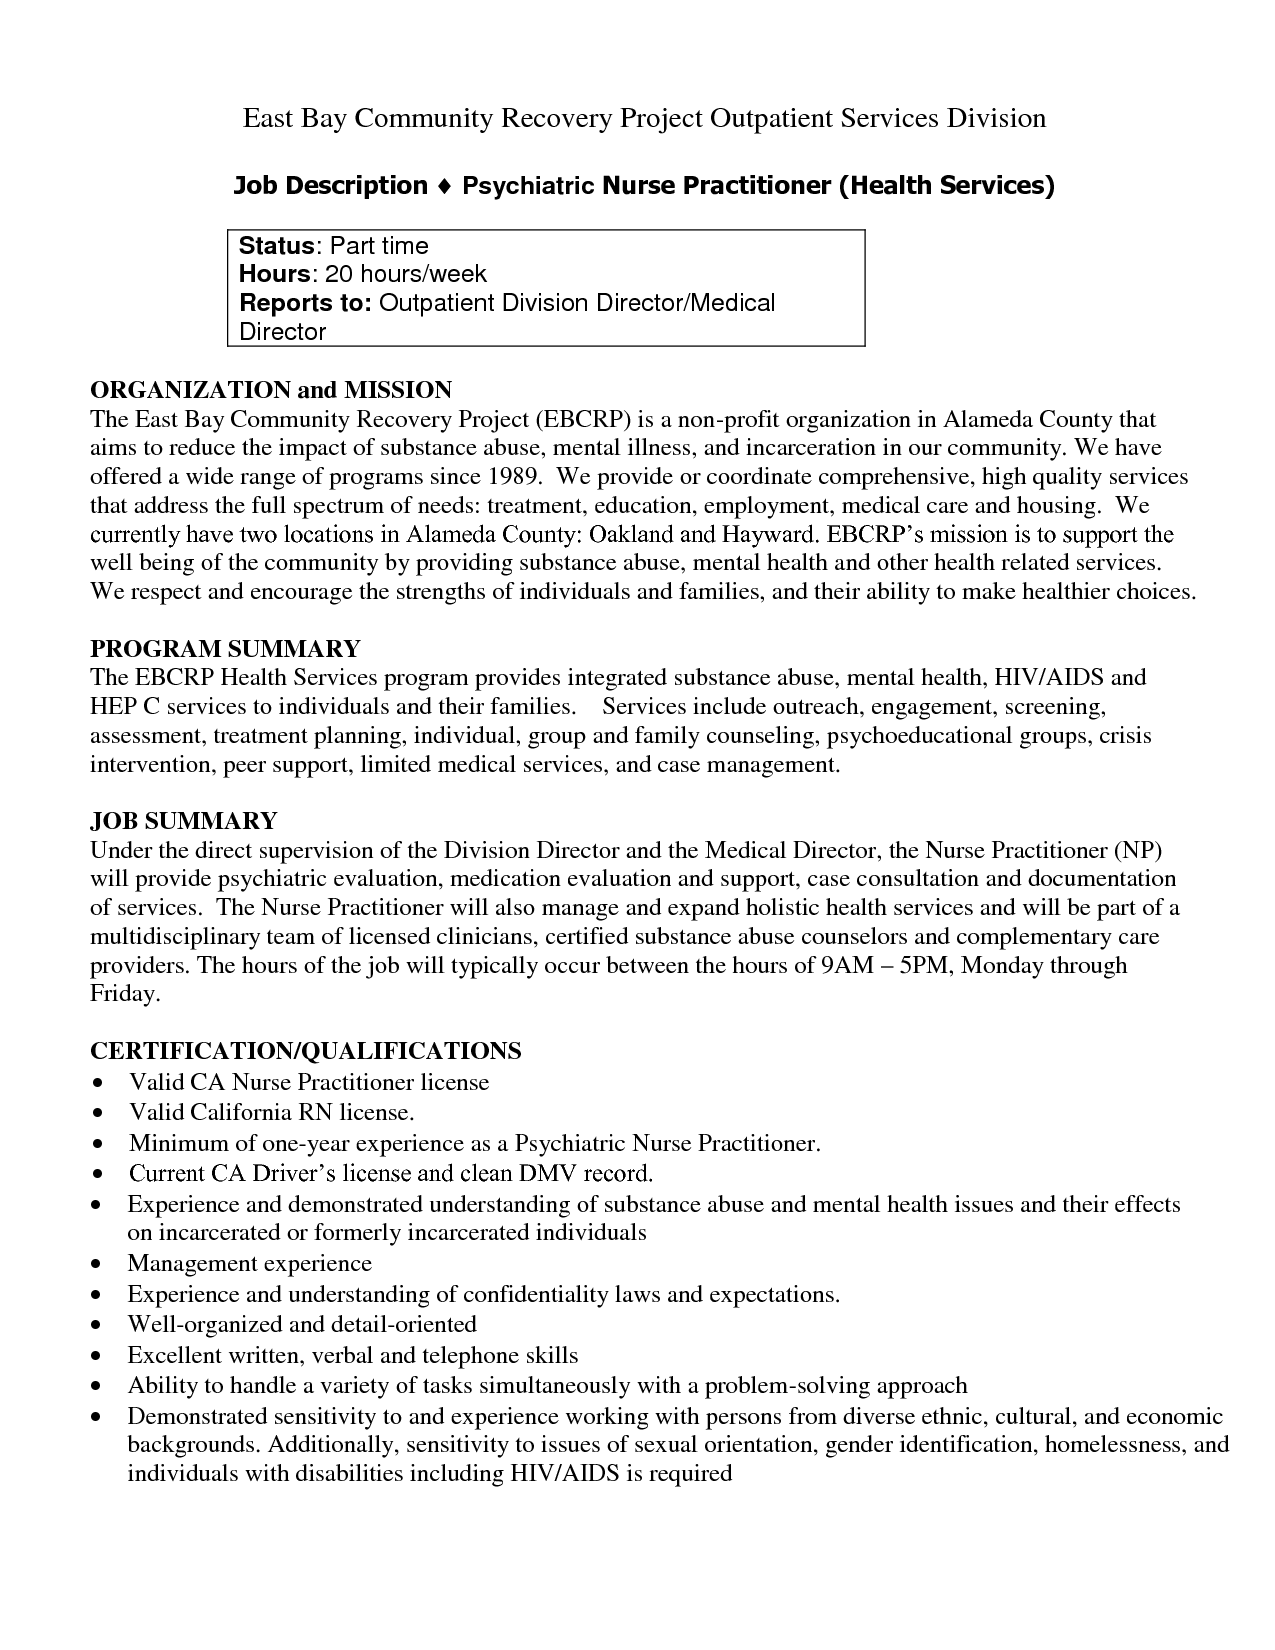 Nurse Practitioner Resume Nurse Practitioner Resume Family Samples Pics Photos Cover Letter